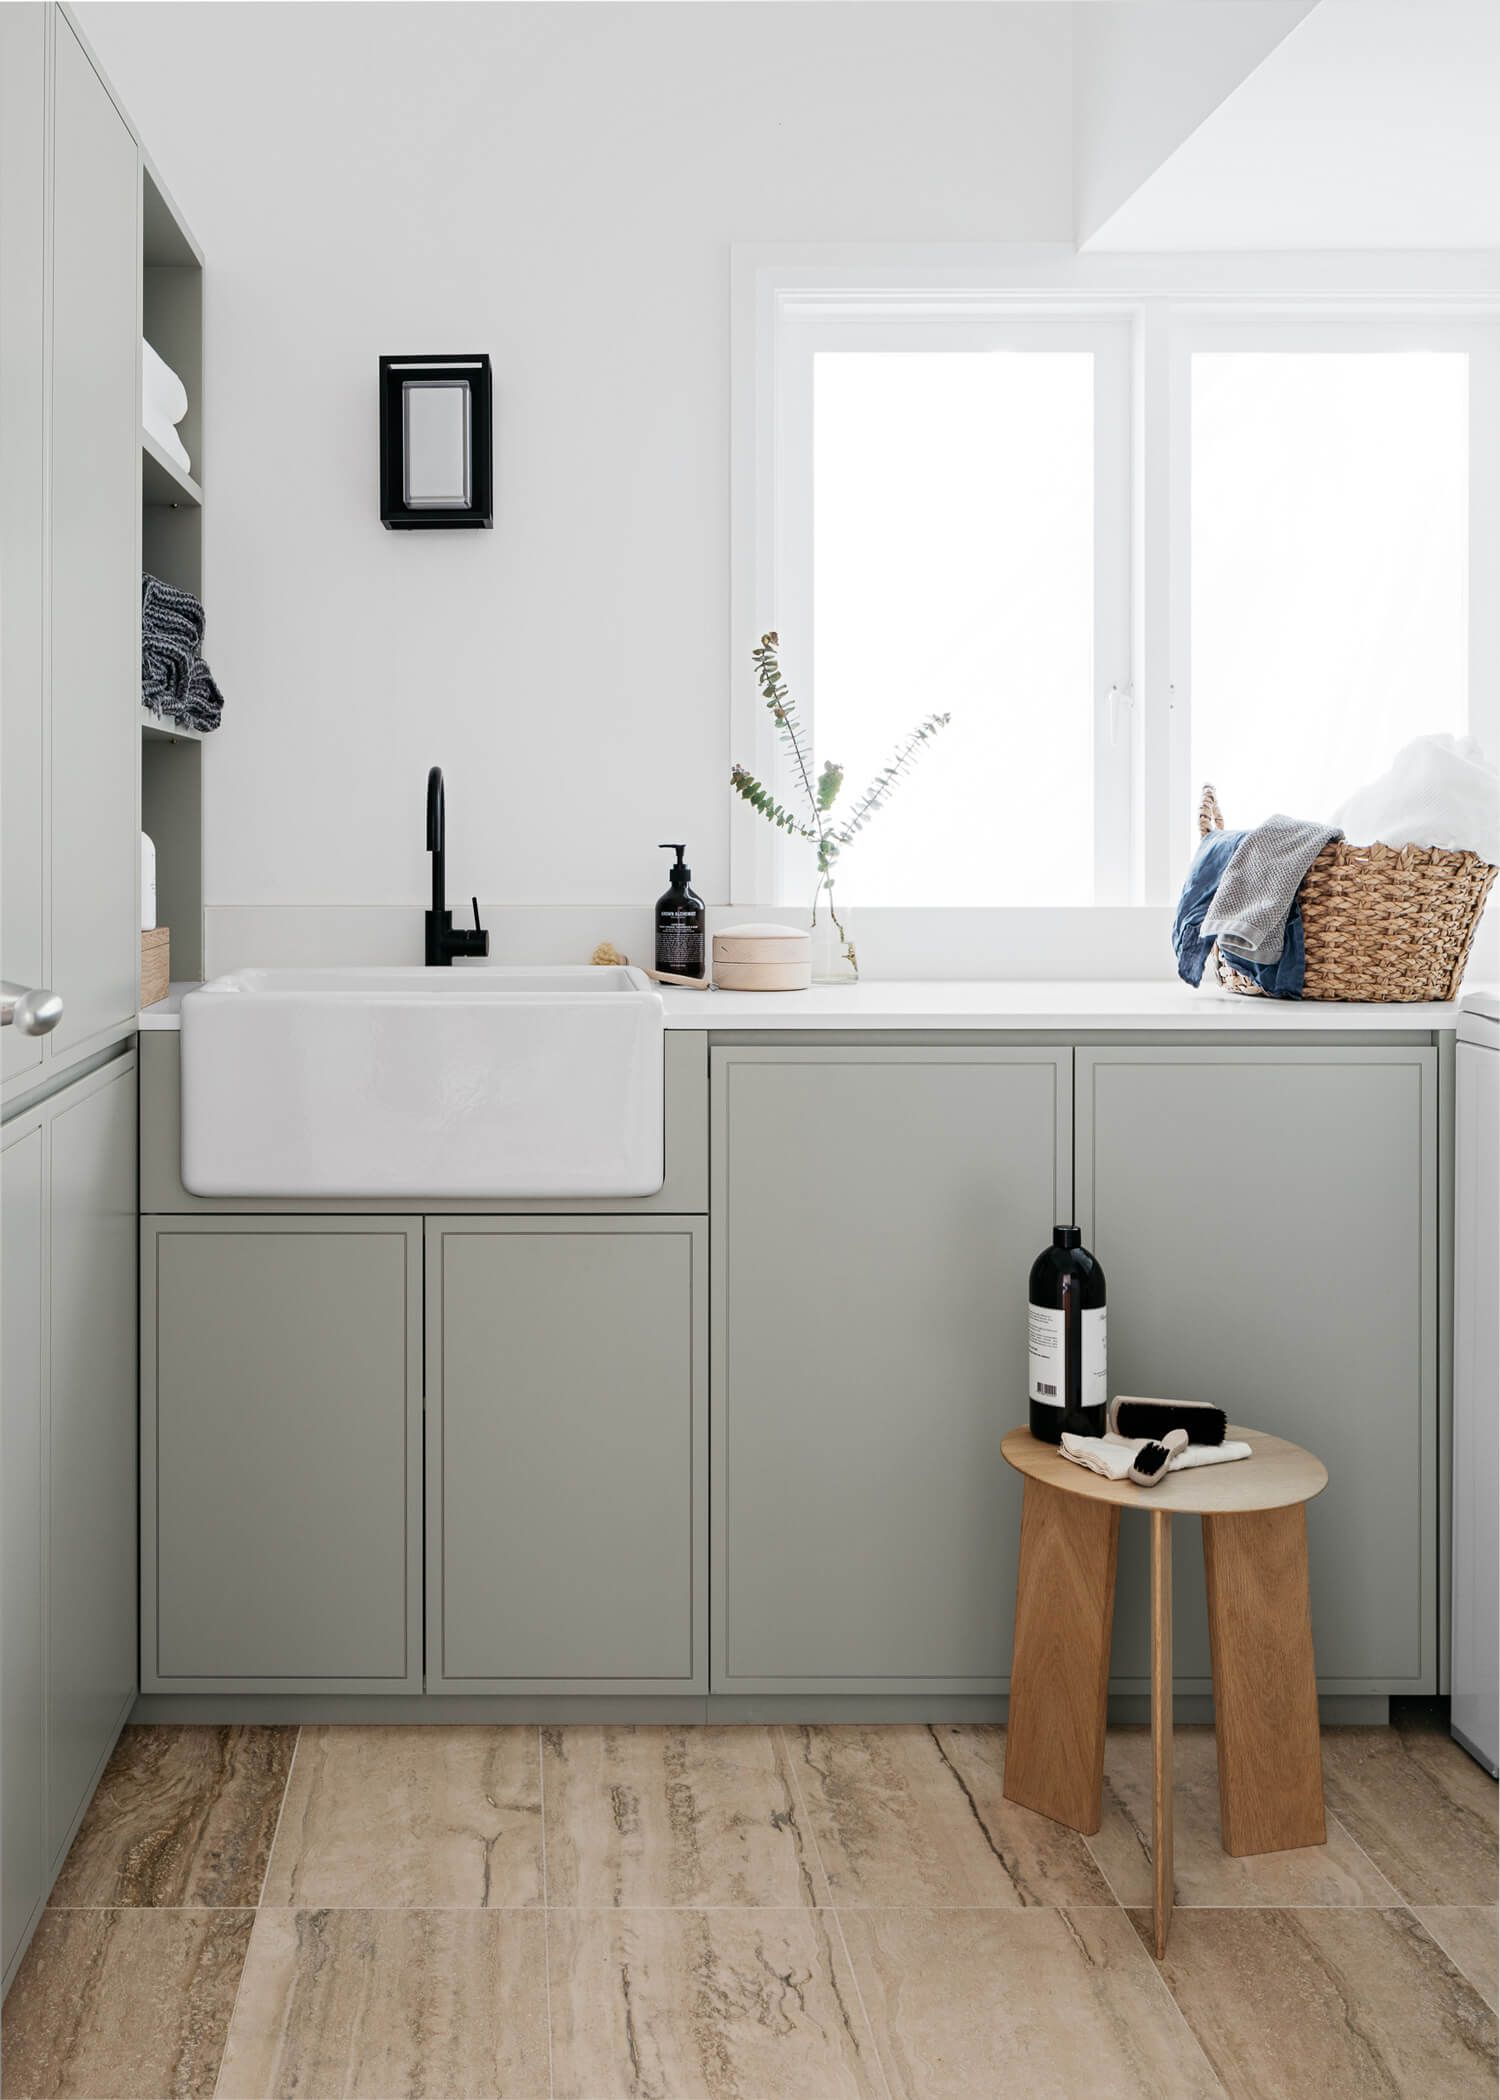 Advice For Picking With Perfect Paint With Porter S Paints Est Living Interior Kitchen Interior Home